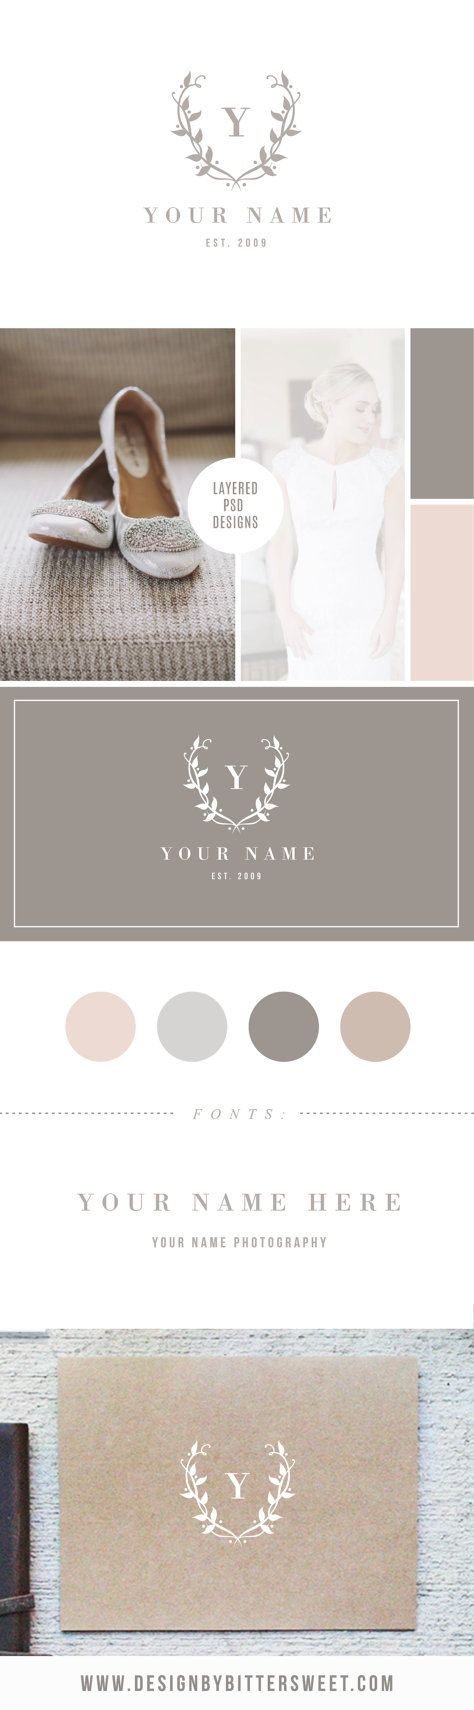 Available in a range of different colour designs instant downloadable - Photographer Logo Design Digital Logo Watermark Instant Download Customize This Listing With